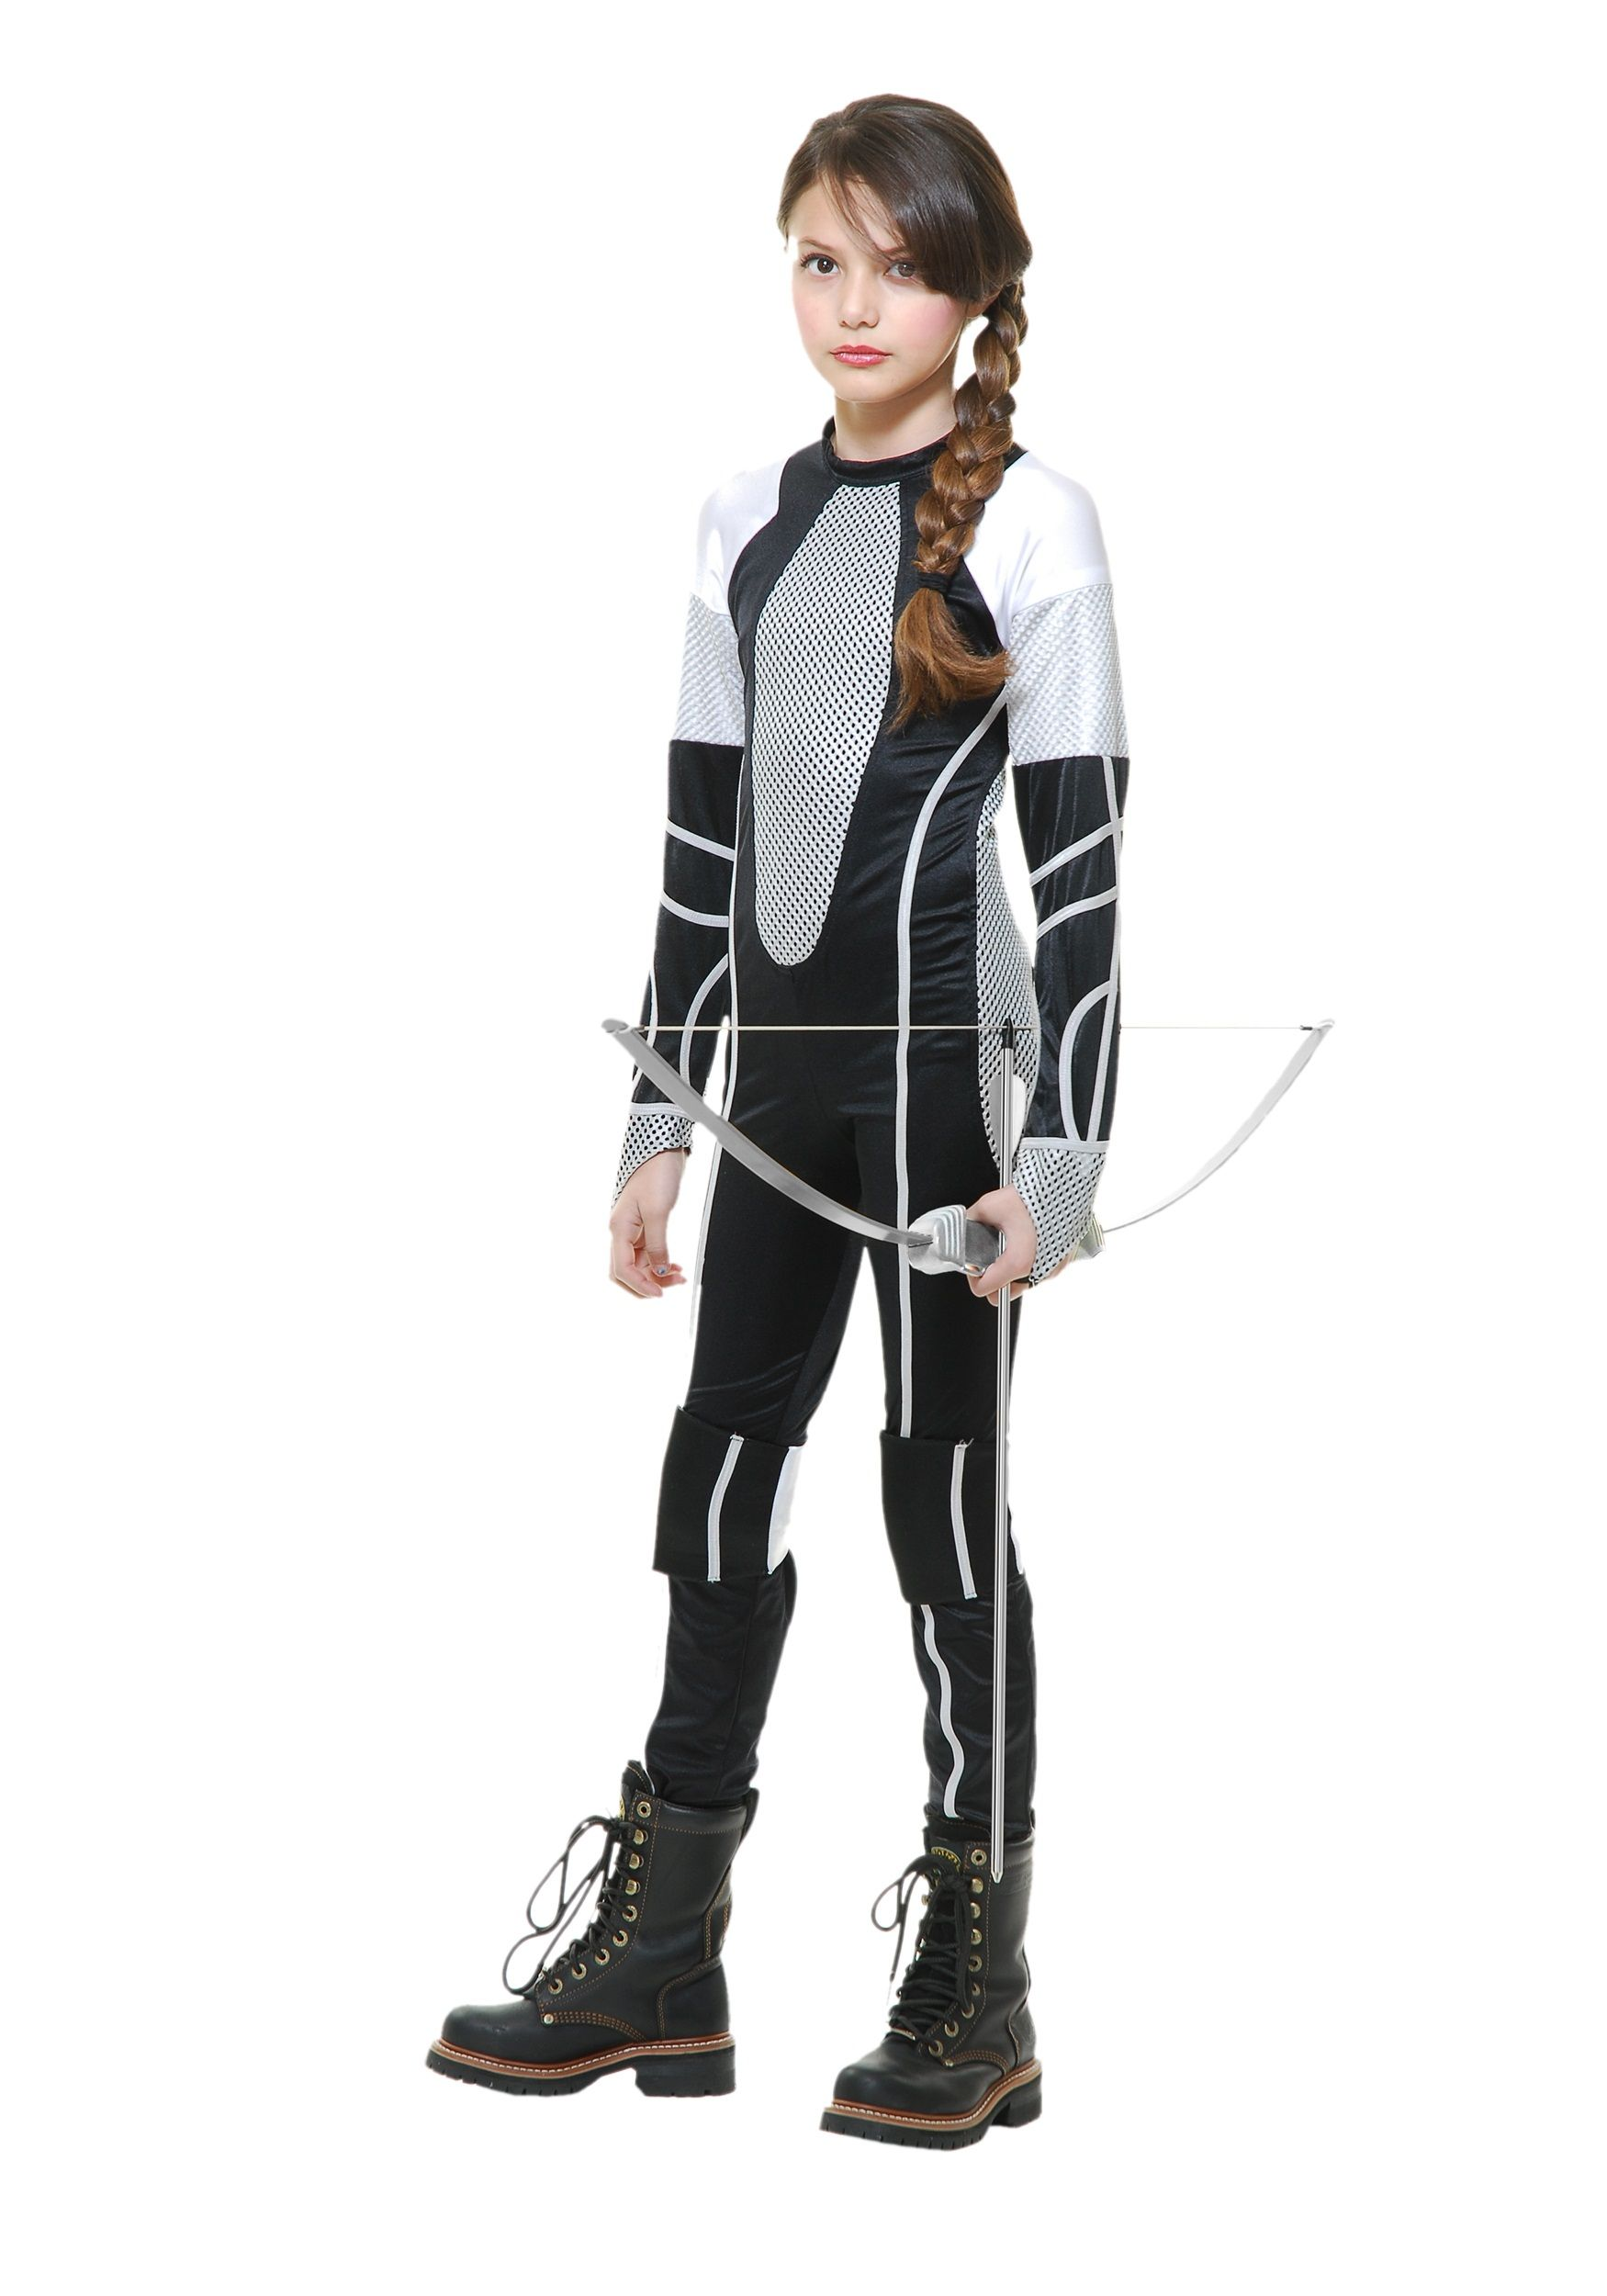 efd61dac Survivor Jumpsuit Girls Costume Katniss Everdeen Halloween Costume, Hunger  Games Costume, Abraham Lincoln Costume